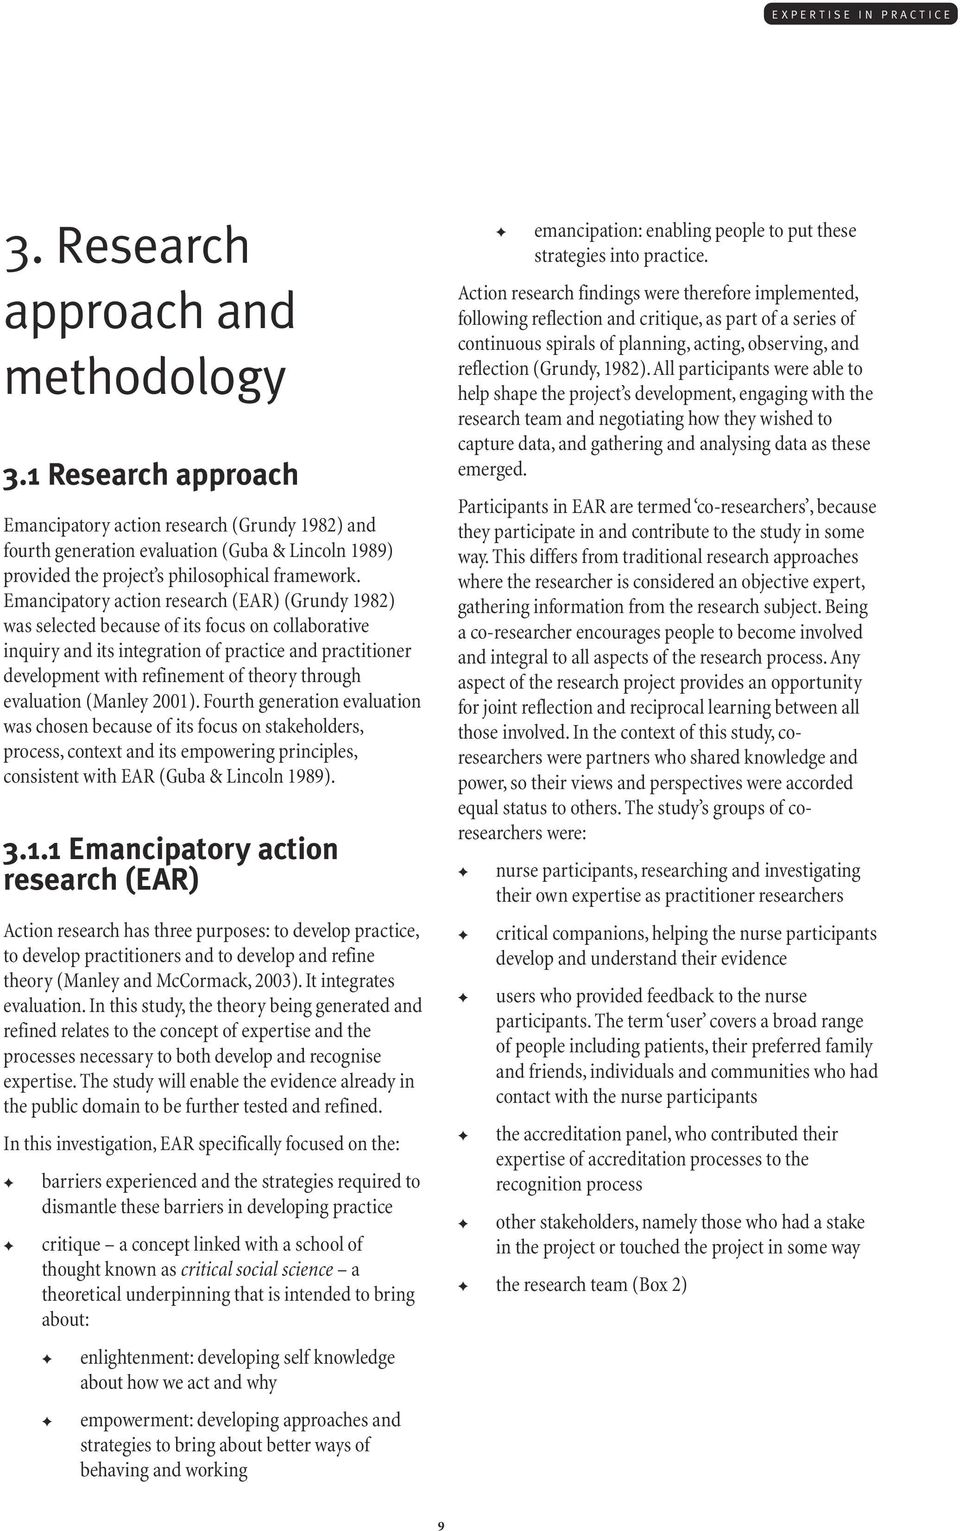 Emancipatory action research (EAR) (Grundy 1982) was selected because of its focus on collaborative inquiry and its integration of practice and practitioner development with refinement of theory